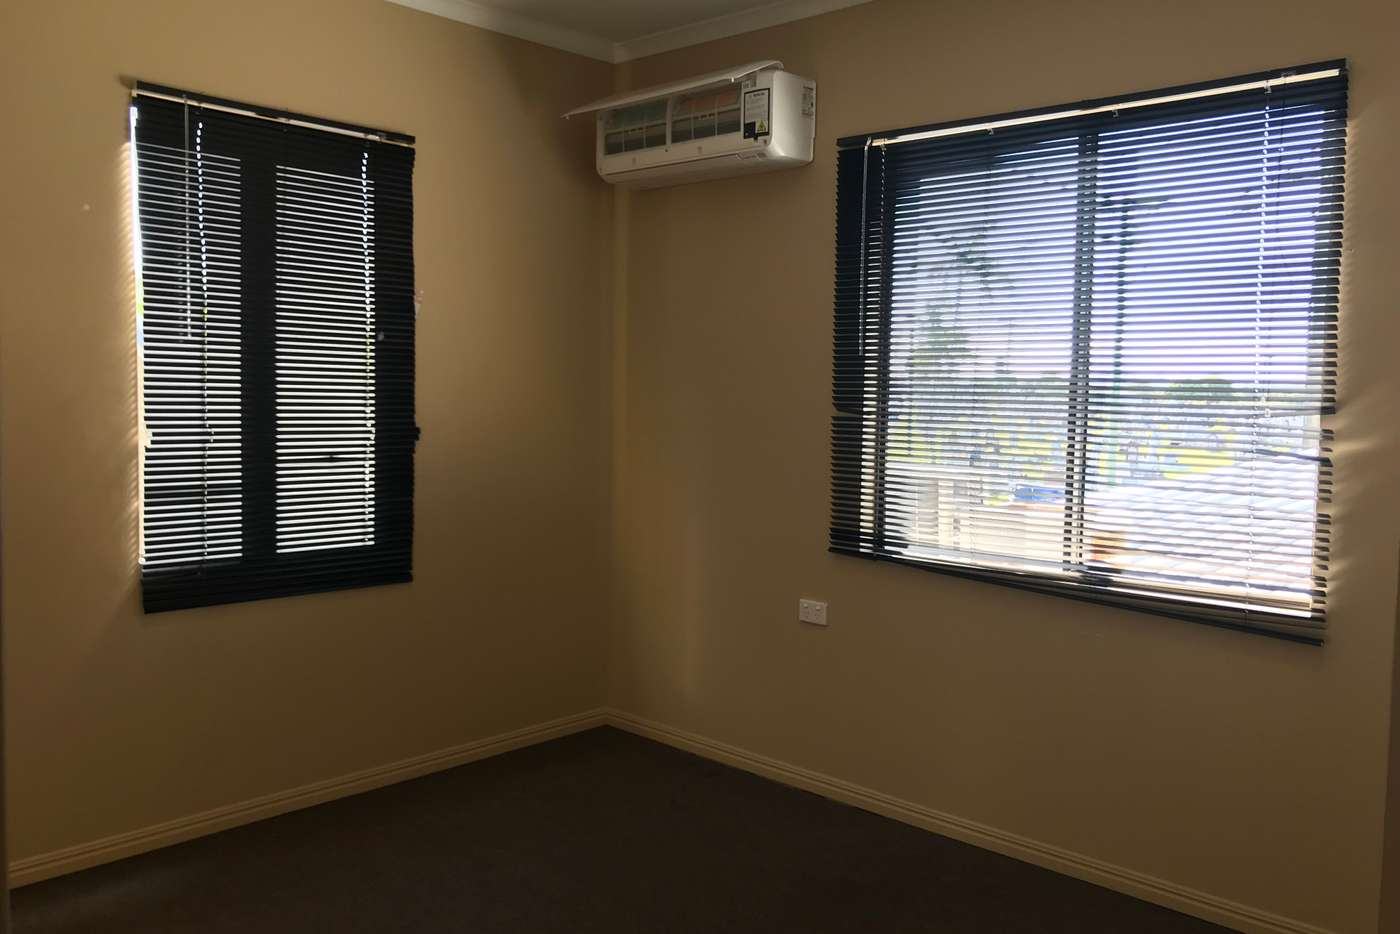 Sixth view of Homely unit listing, 2/5 Holland Street, West Mackay QLD 4740